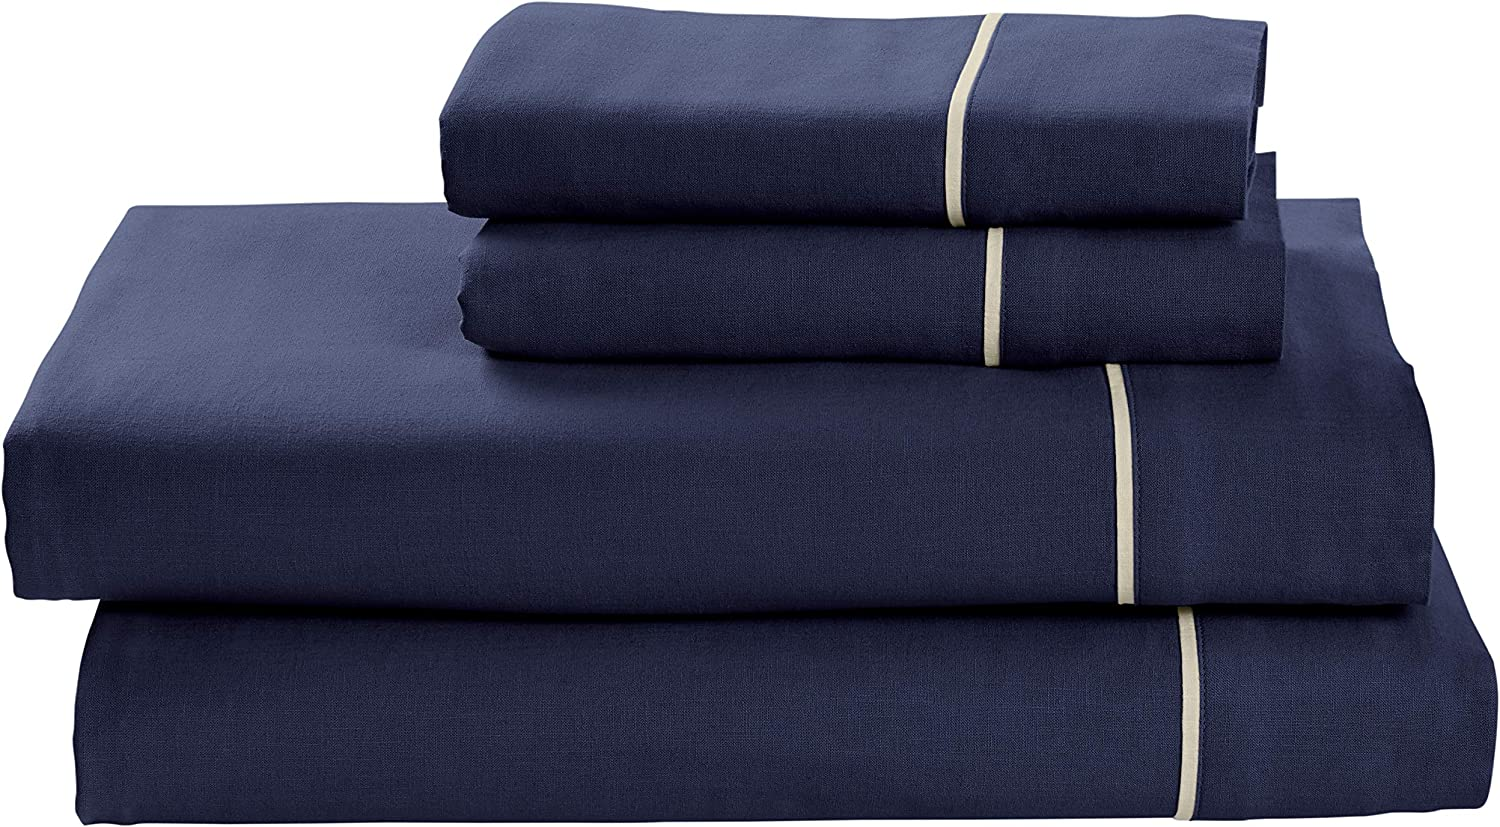 Rivet Contrast Hem Breathable Cotton Linen Sheet Set, Queen, Navy Mushroom